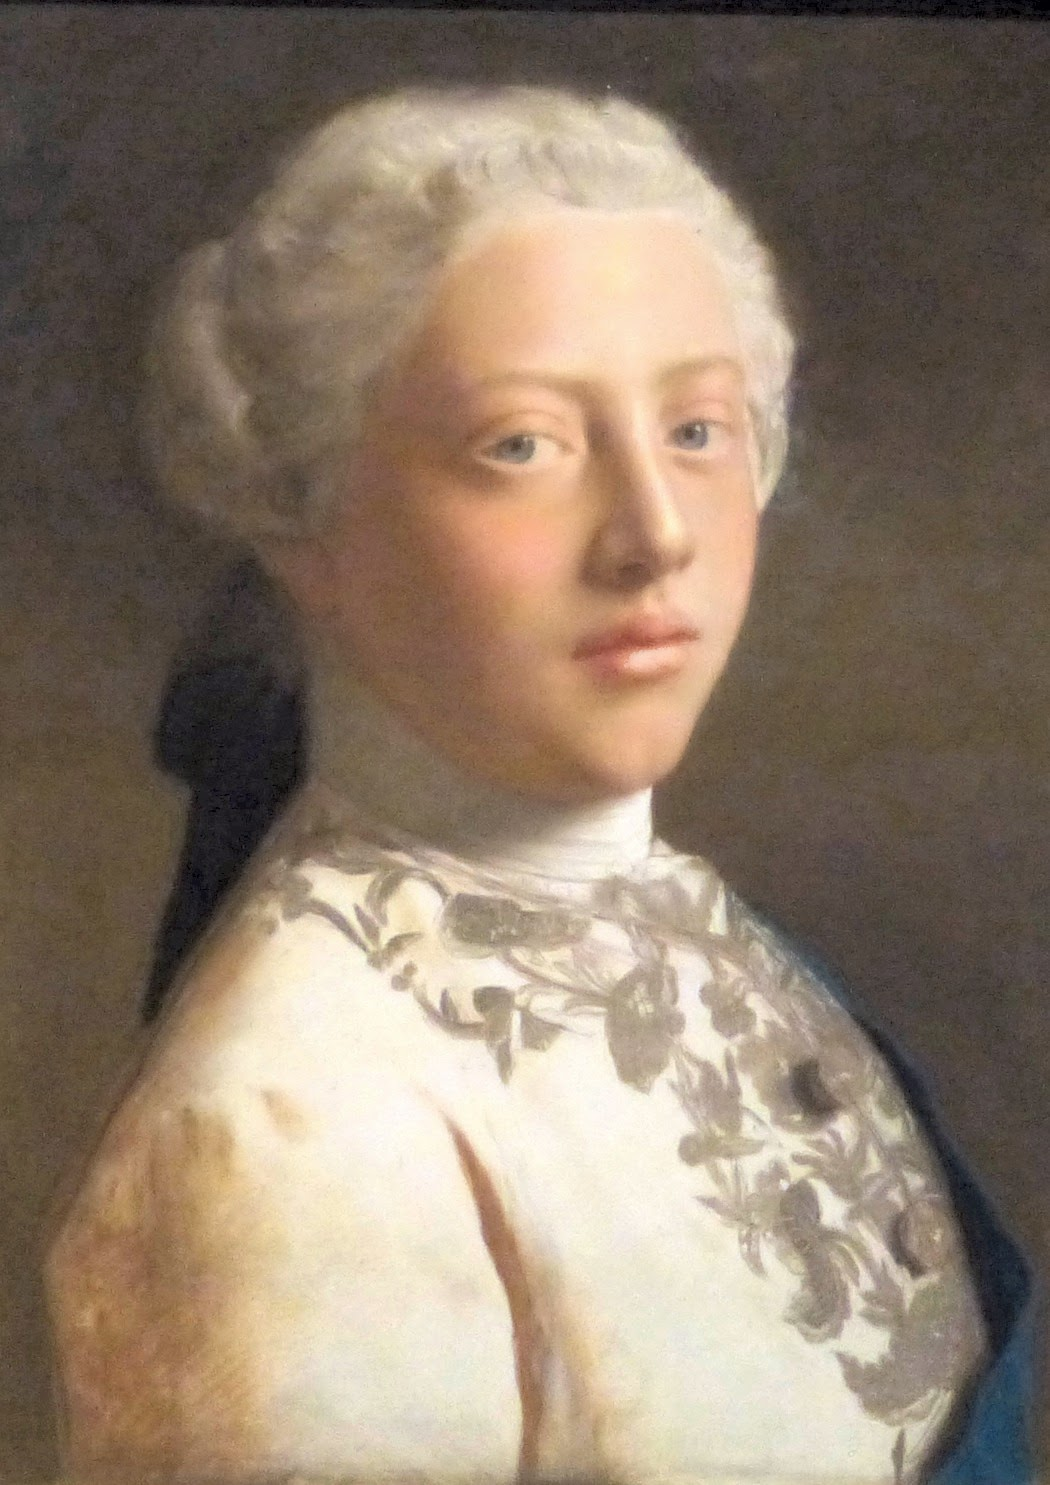 George III by Jean-Étienne Liotard (1754) - on display at the First Georgians exhibition